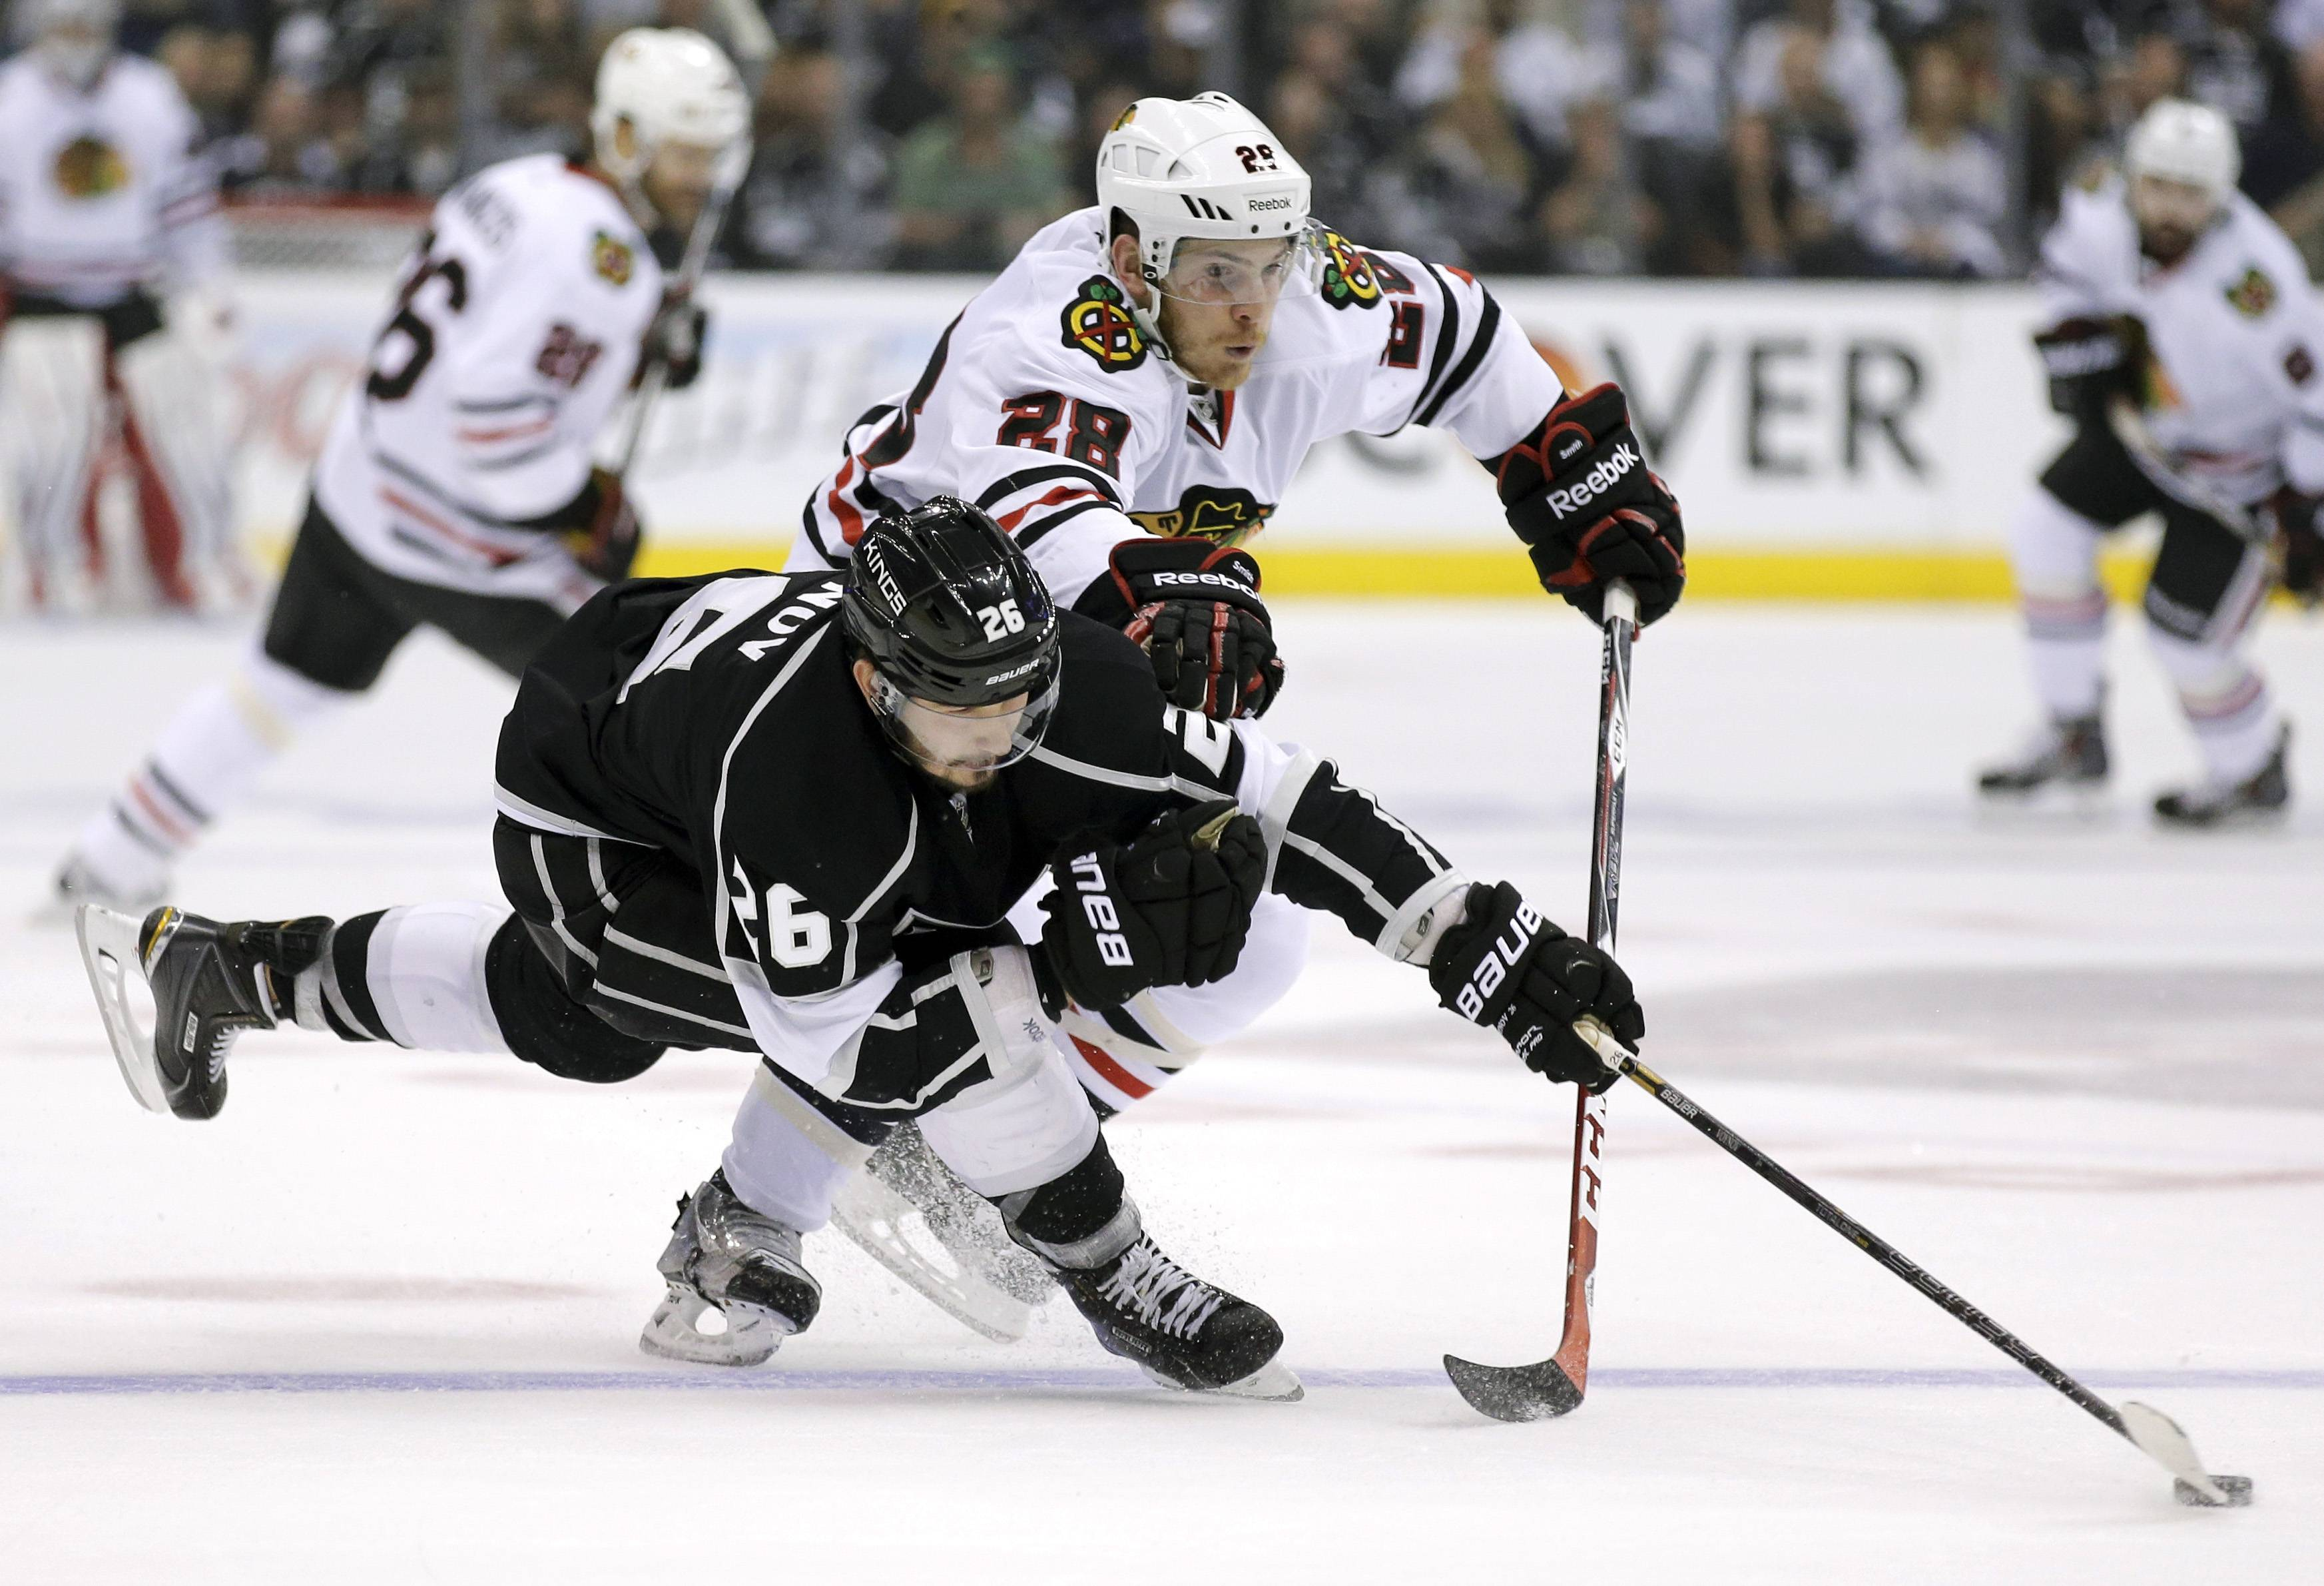 Los Angeles Kings defenseman Slava Voynov, left, knocks the puck away from Chicago Blackhawks right wing Ben Smith during the first period of Game 4 of the Western Conference finals of the NHL hockey Stanley Cup playoffs in Los Angeles, Monday, May 26, 2014.